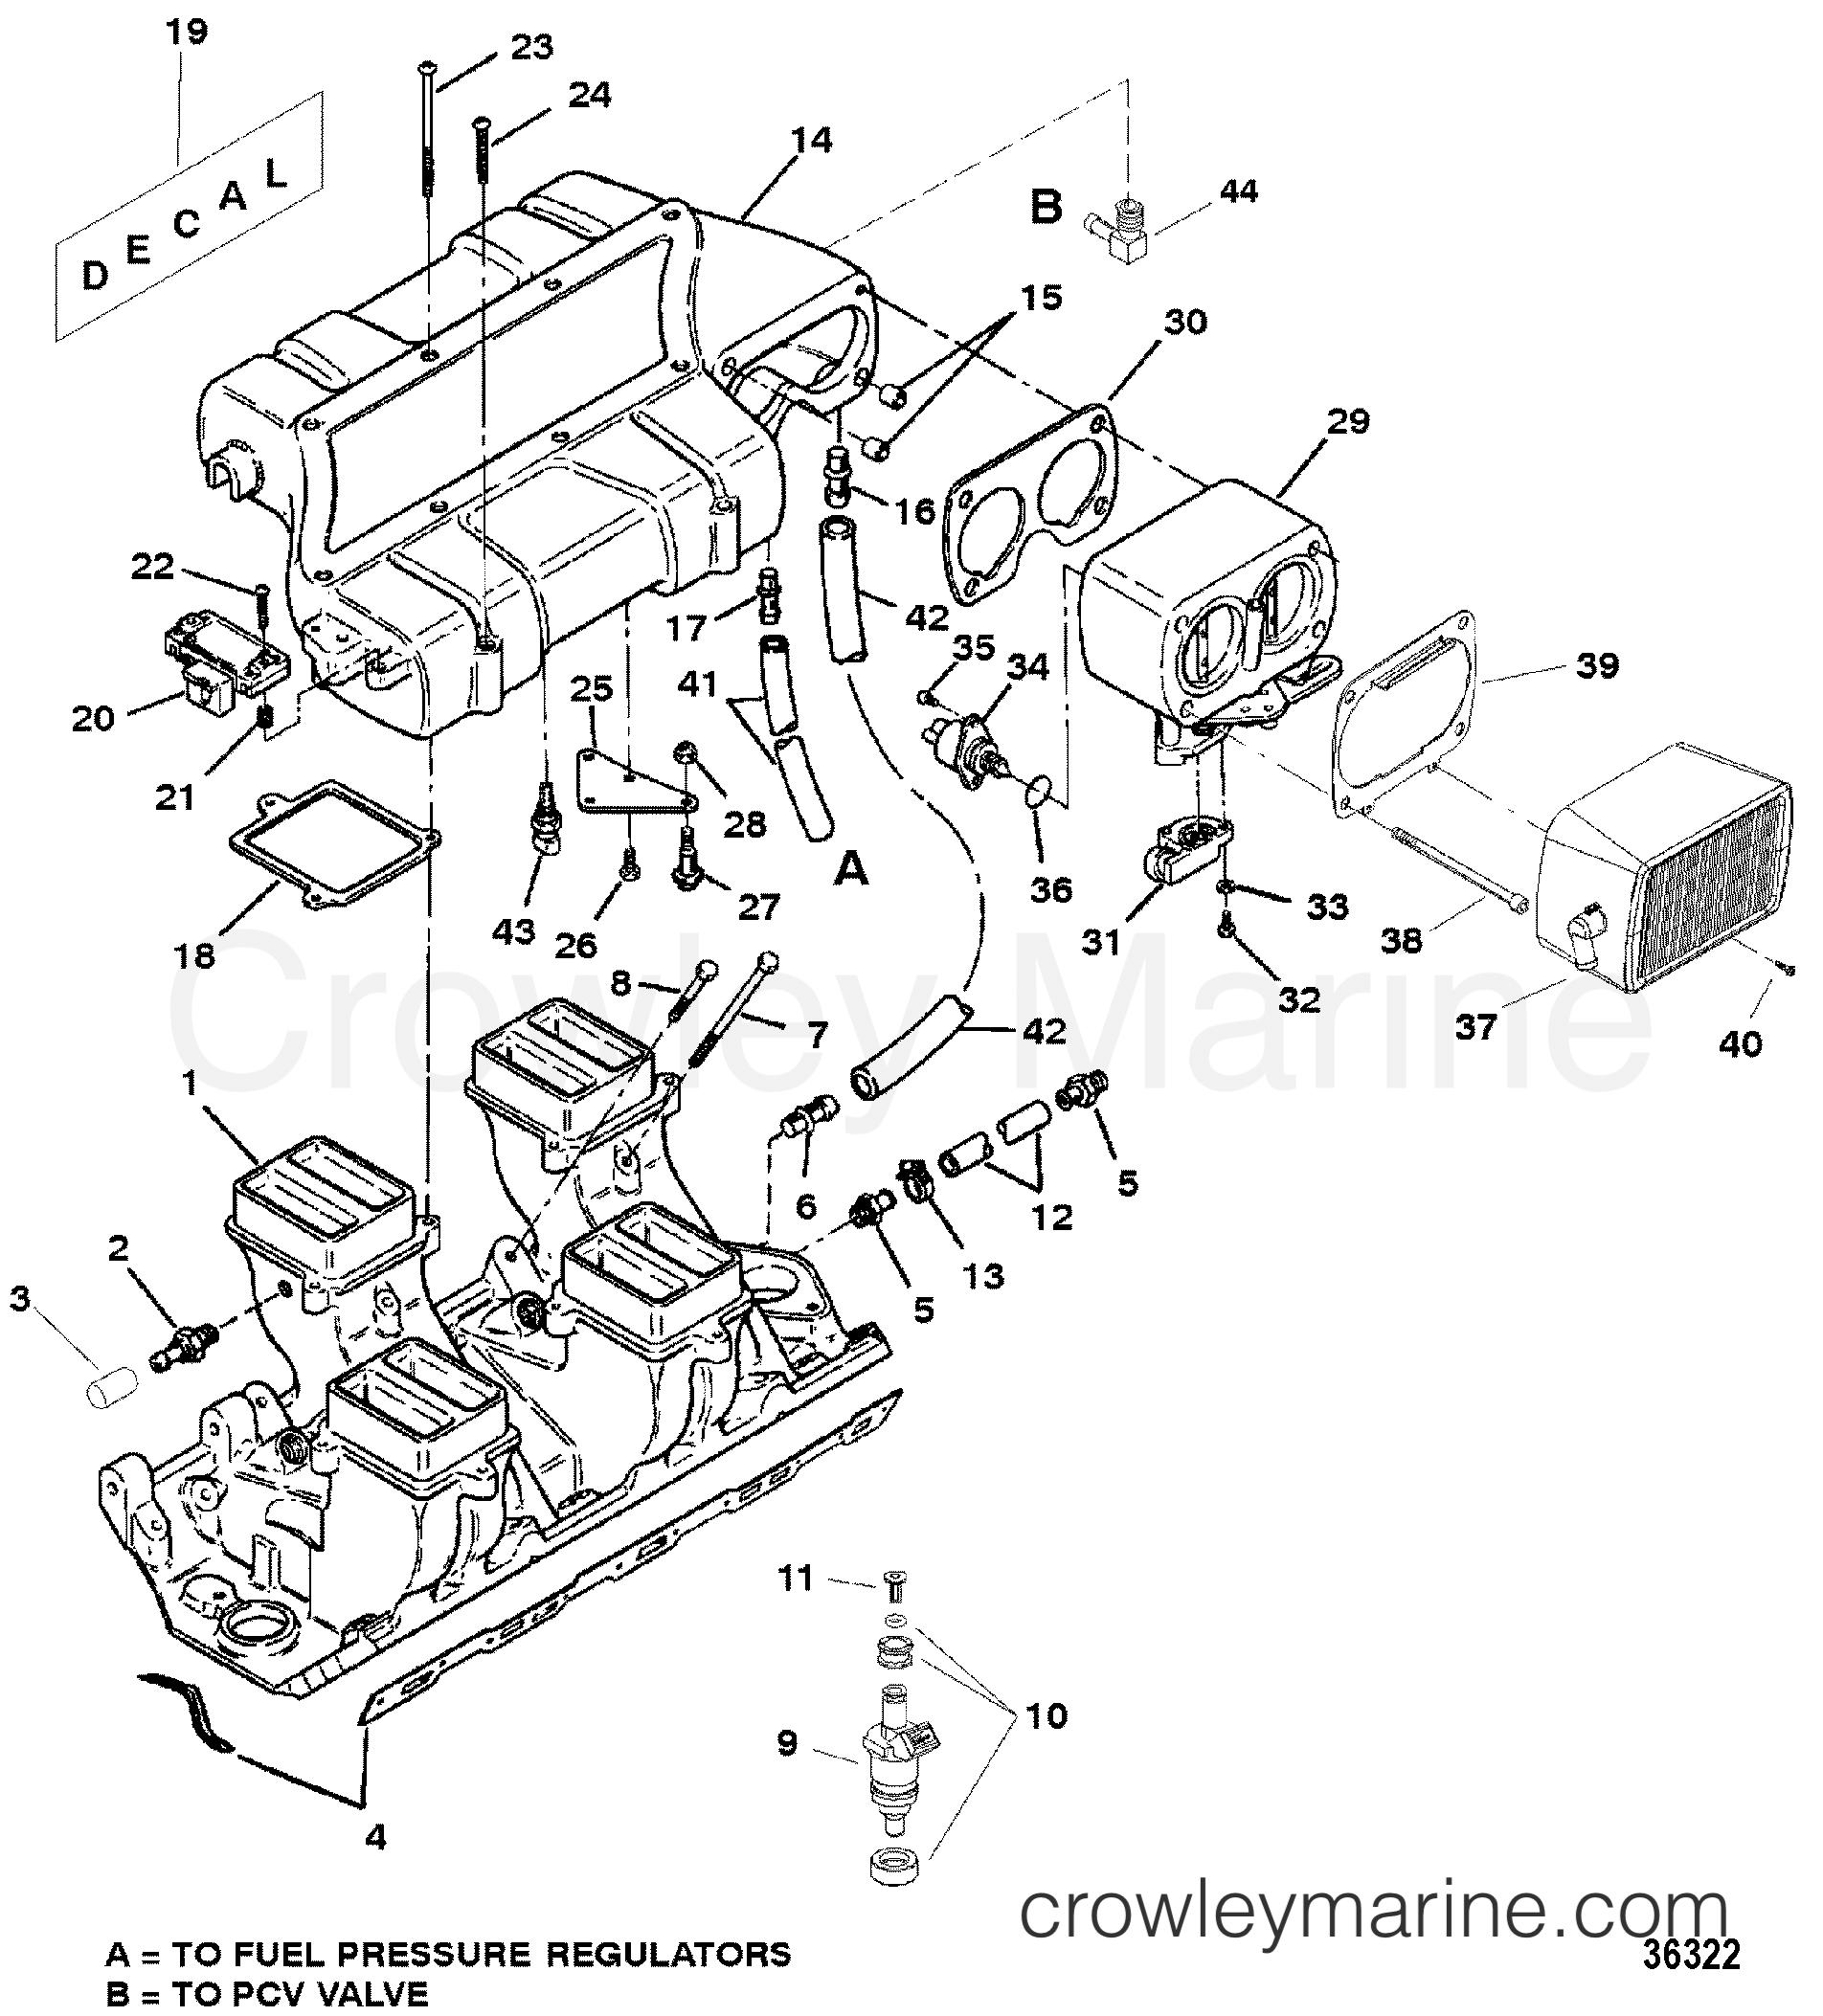 ... Wiring Diagram And Source · intake manifold and intake plenum 1998 mercruiser  454 mag bravo rh crowleymarine com mercruiser 454 magnum